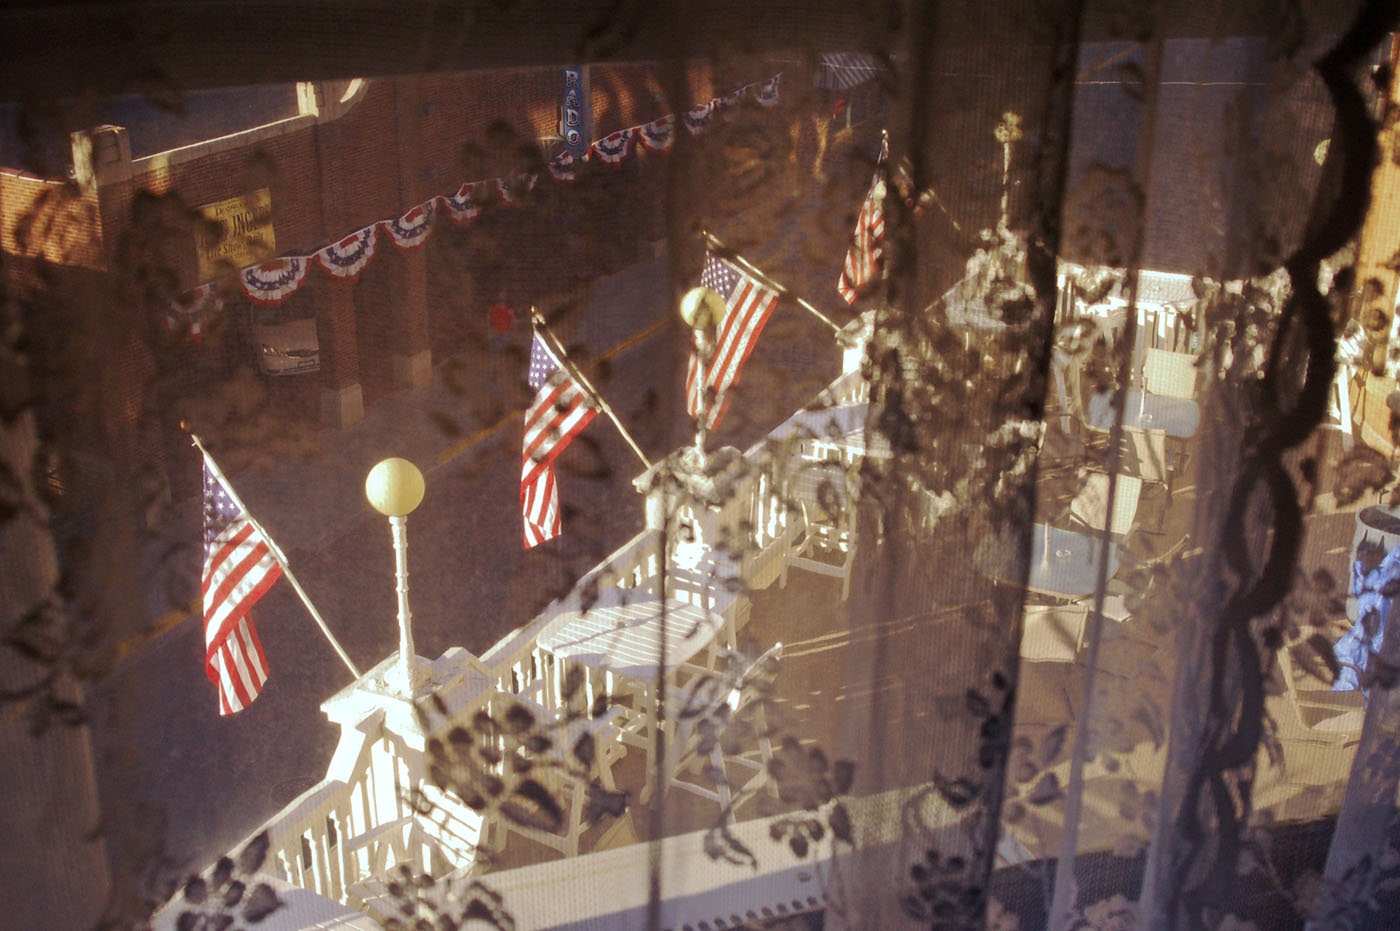 08_HWS_FROM_THE_FRANKLIN_HOTEL_Deadwood__SD_